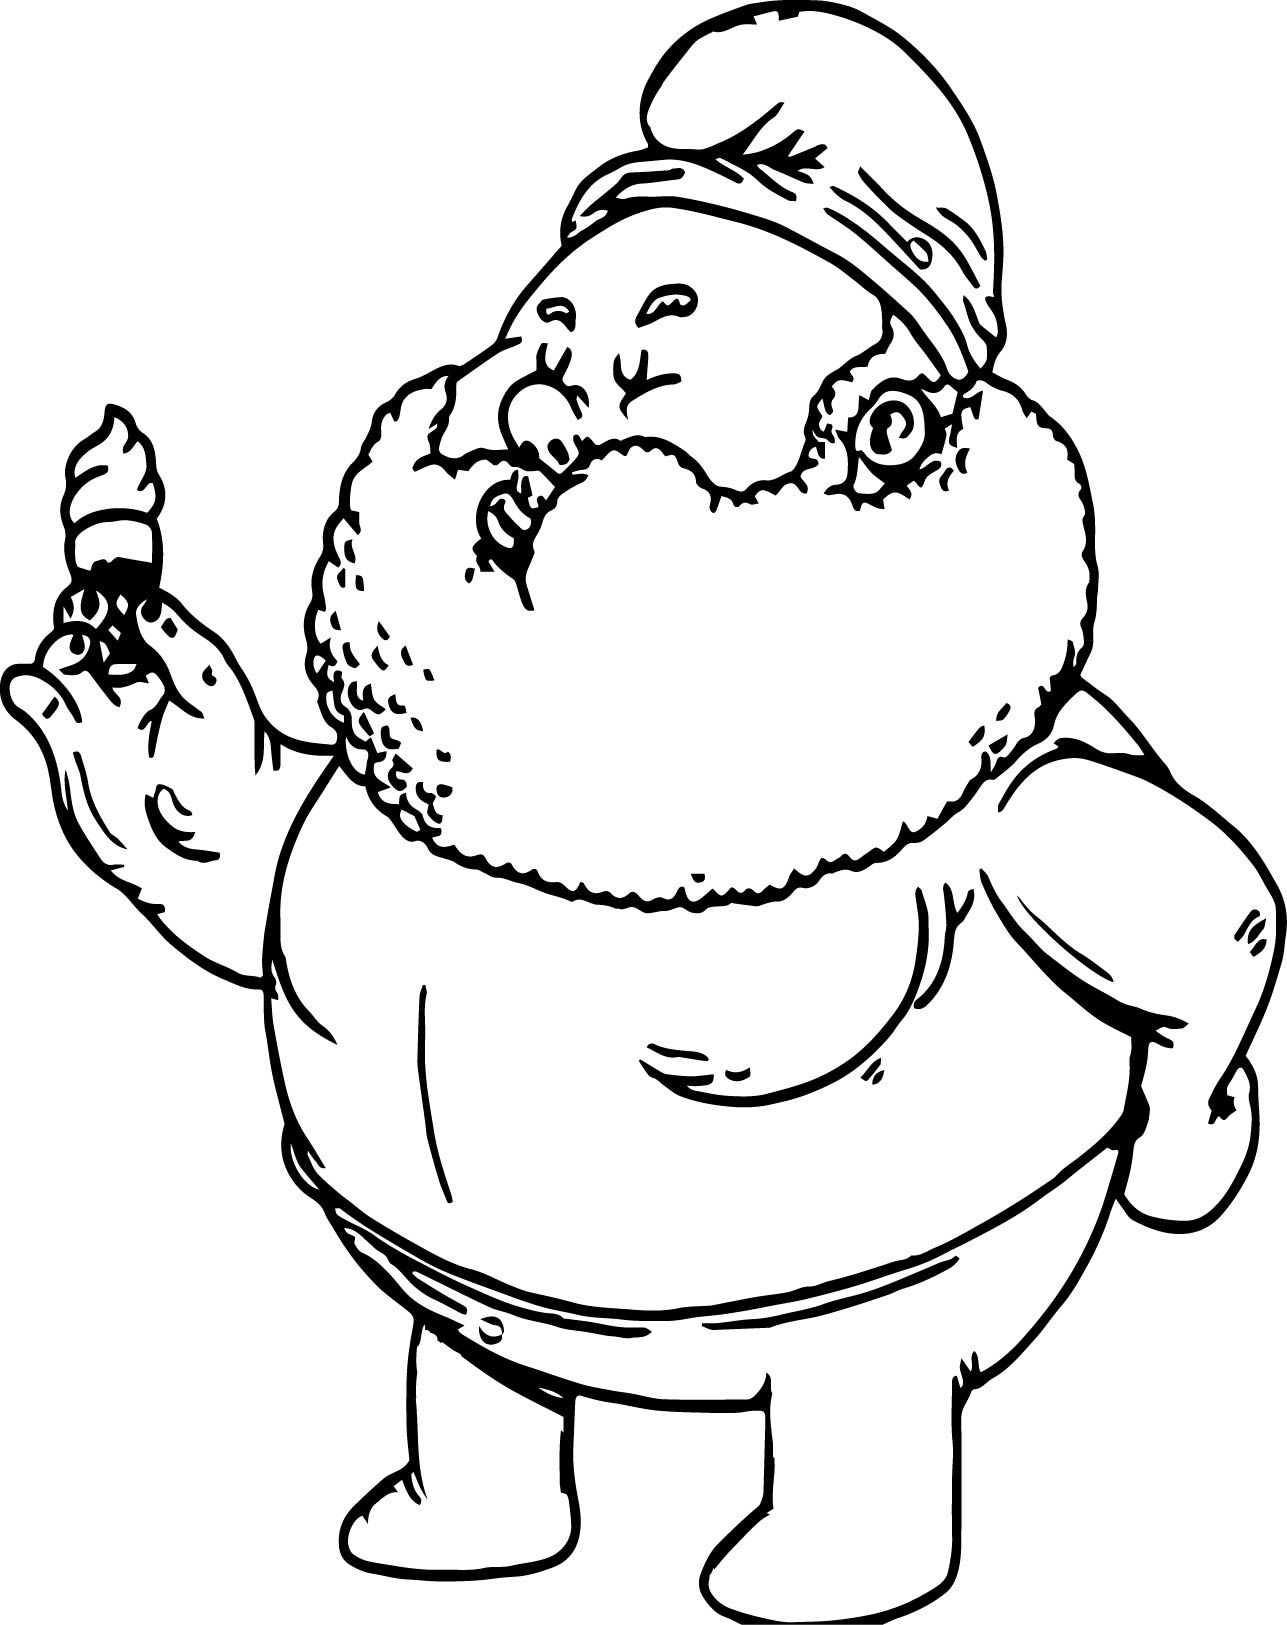 awesome Chunkies Papa Smurf Coloring Page | wecoloringpage | Pinterest